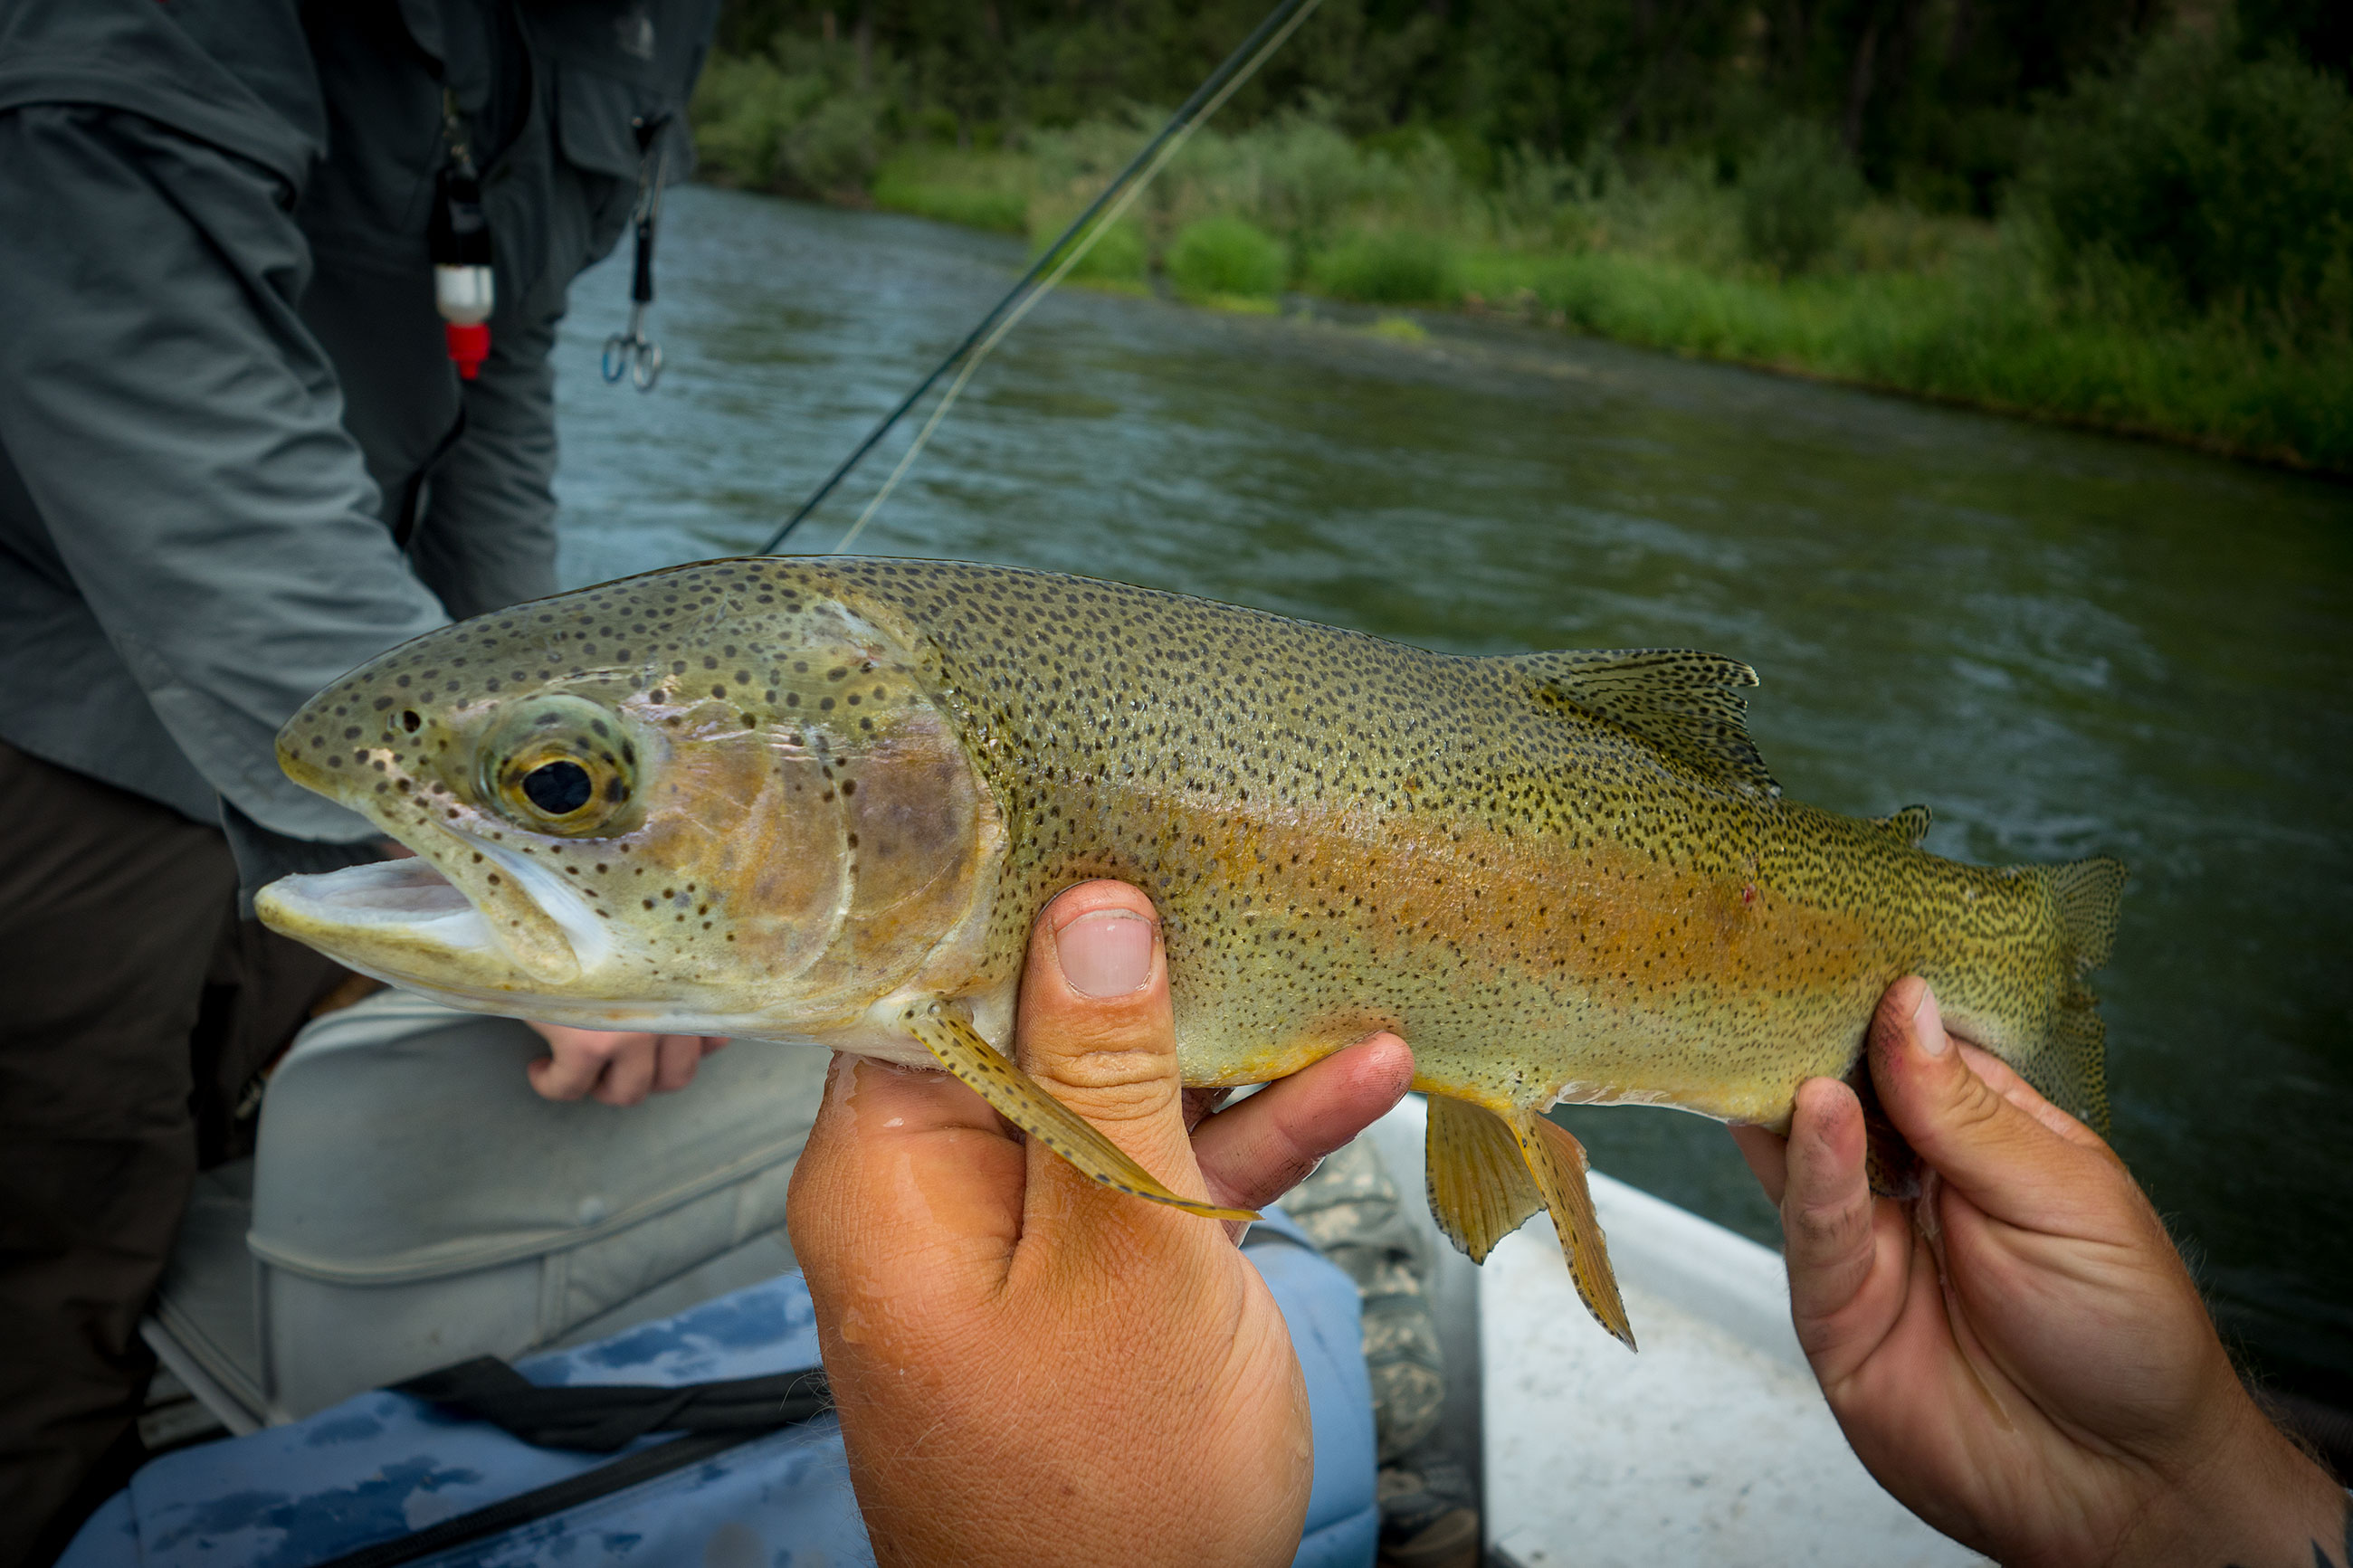 Another healthy fish that smashed a size 6 dry fly.